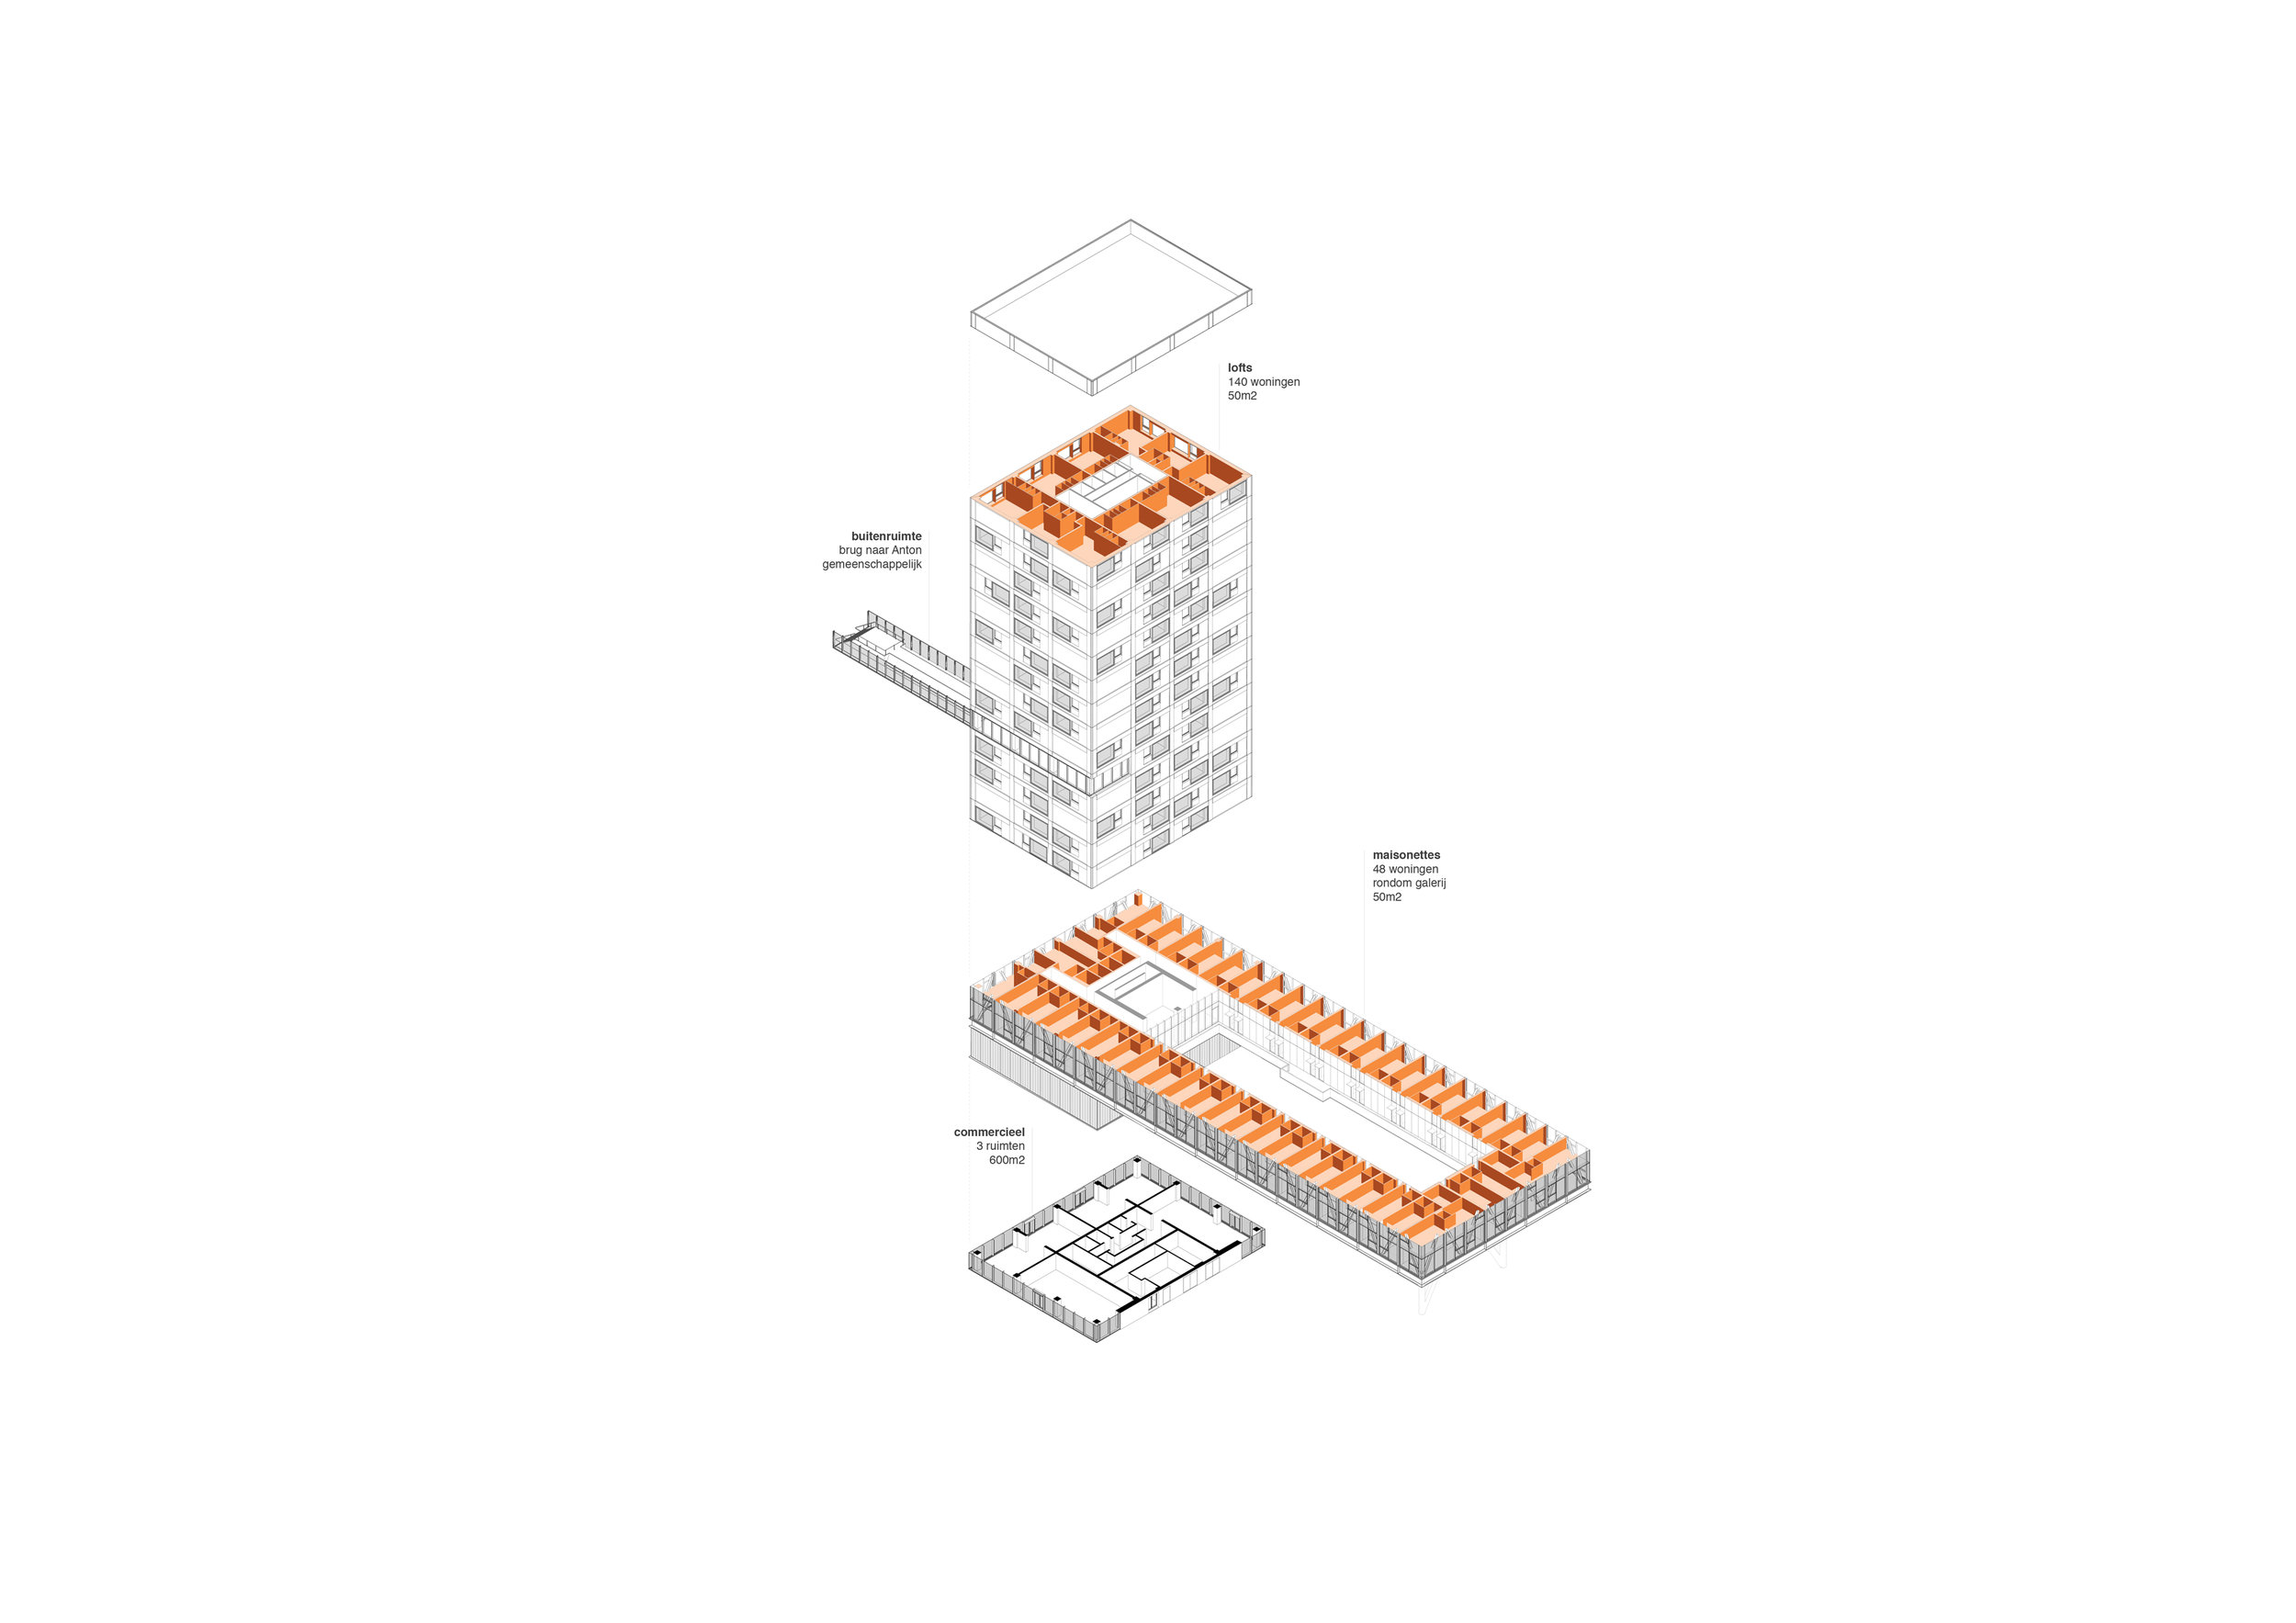 Isometric view with specific type of houses for the bridge and the tower